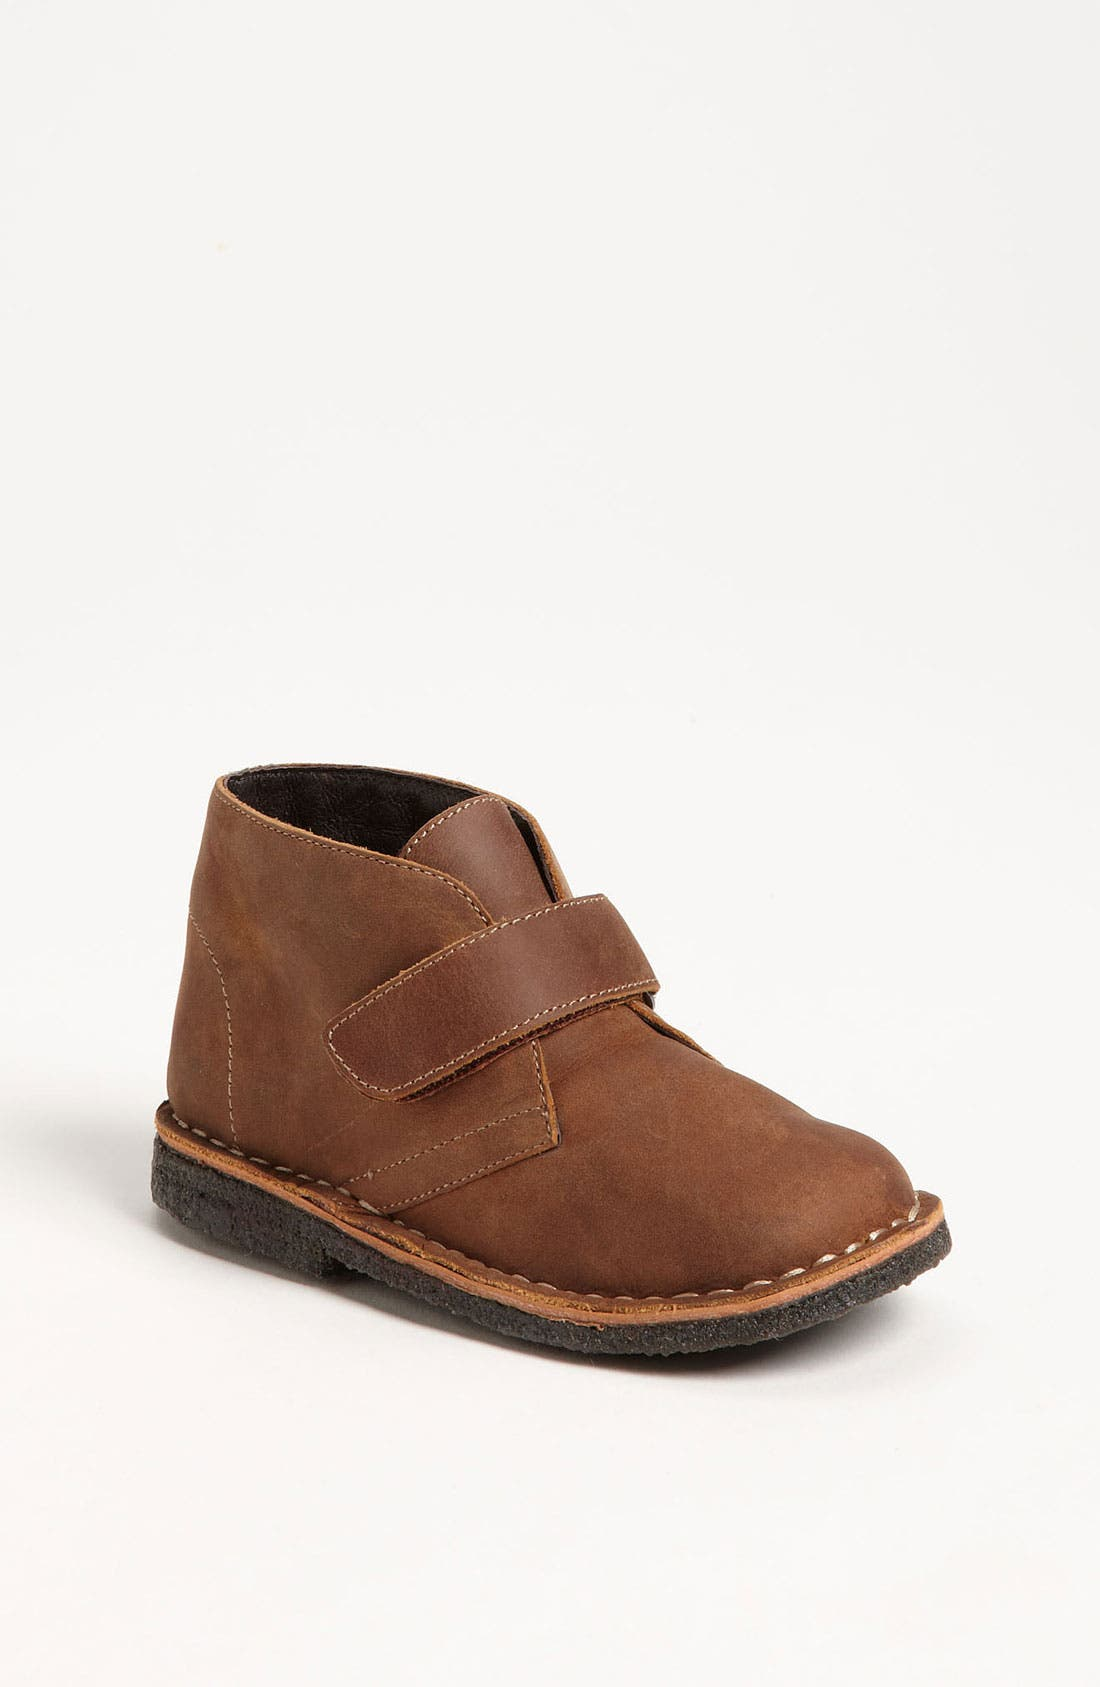 Alternate Image 1 Selected - Cole Haan 'City' Chukka Boot (Toddler, Little Kid & Big Kid)